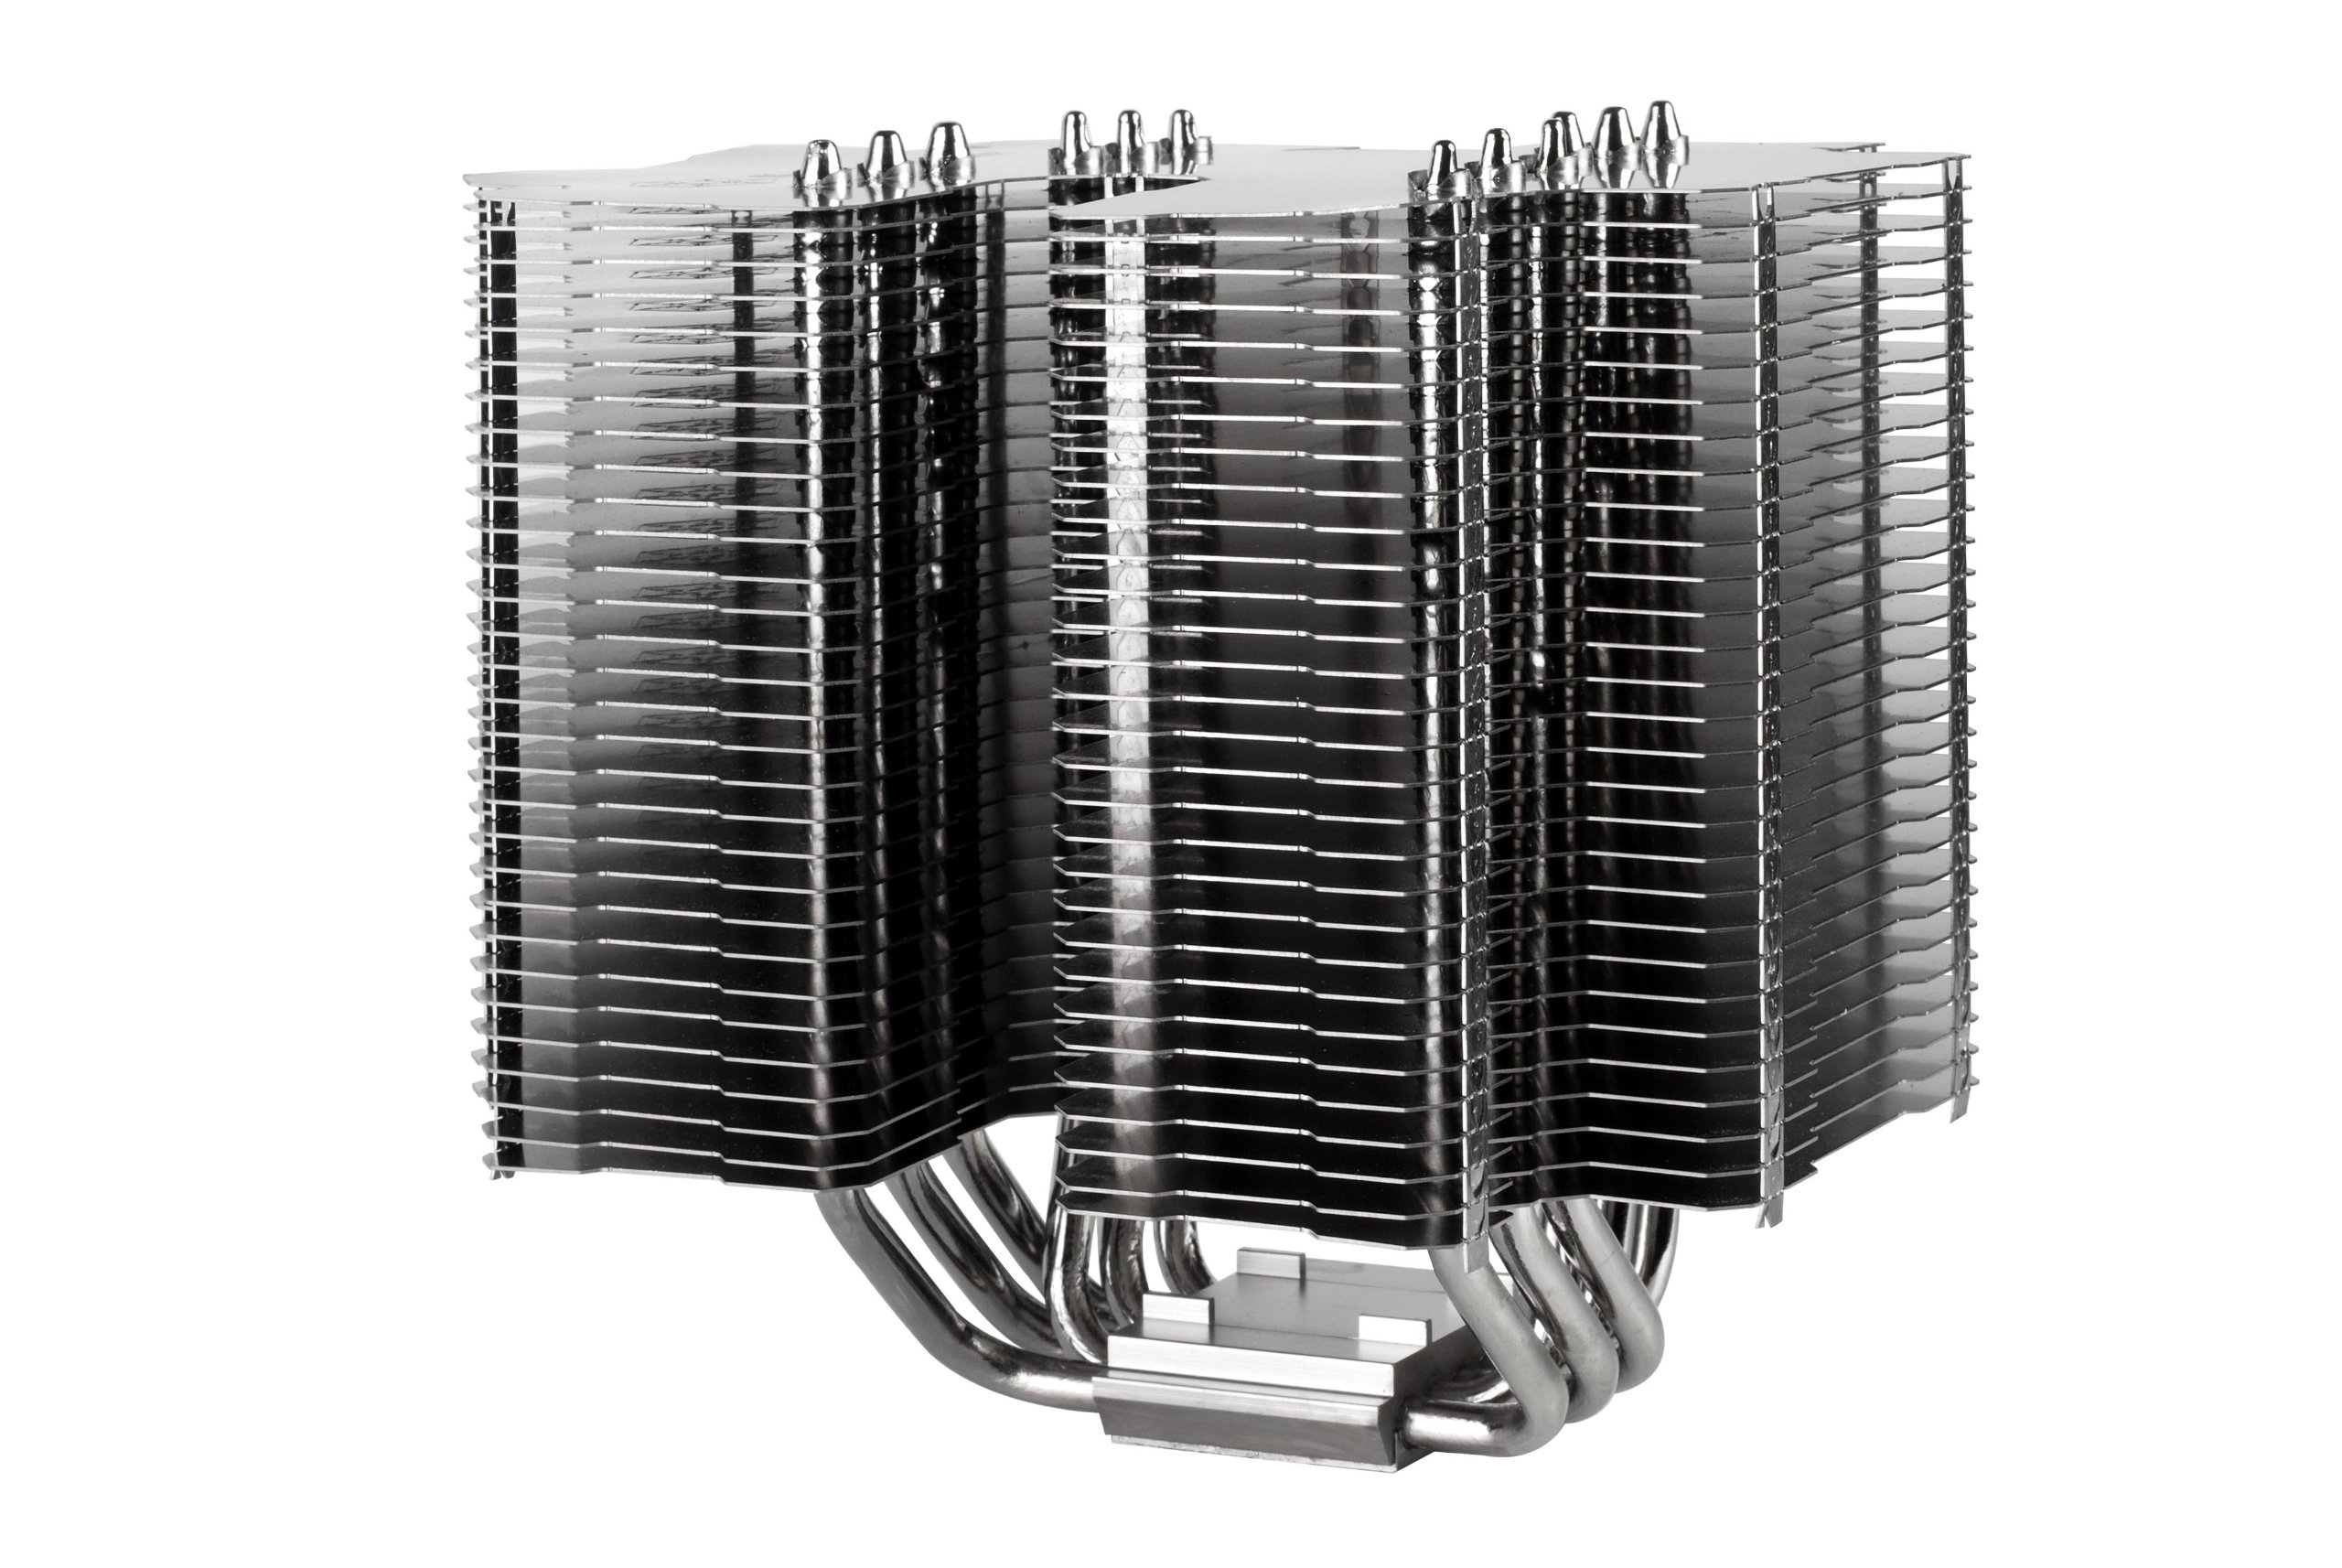 Silverstone SST-HE02-V2 - Heligon CPU Cooler, Superior Silence and Performance, Intel/AMD, AM4 Ready